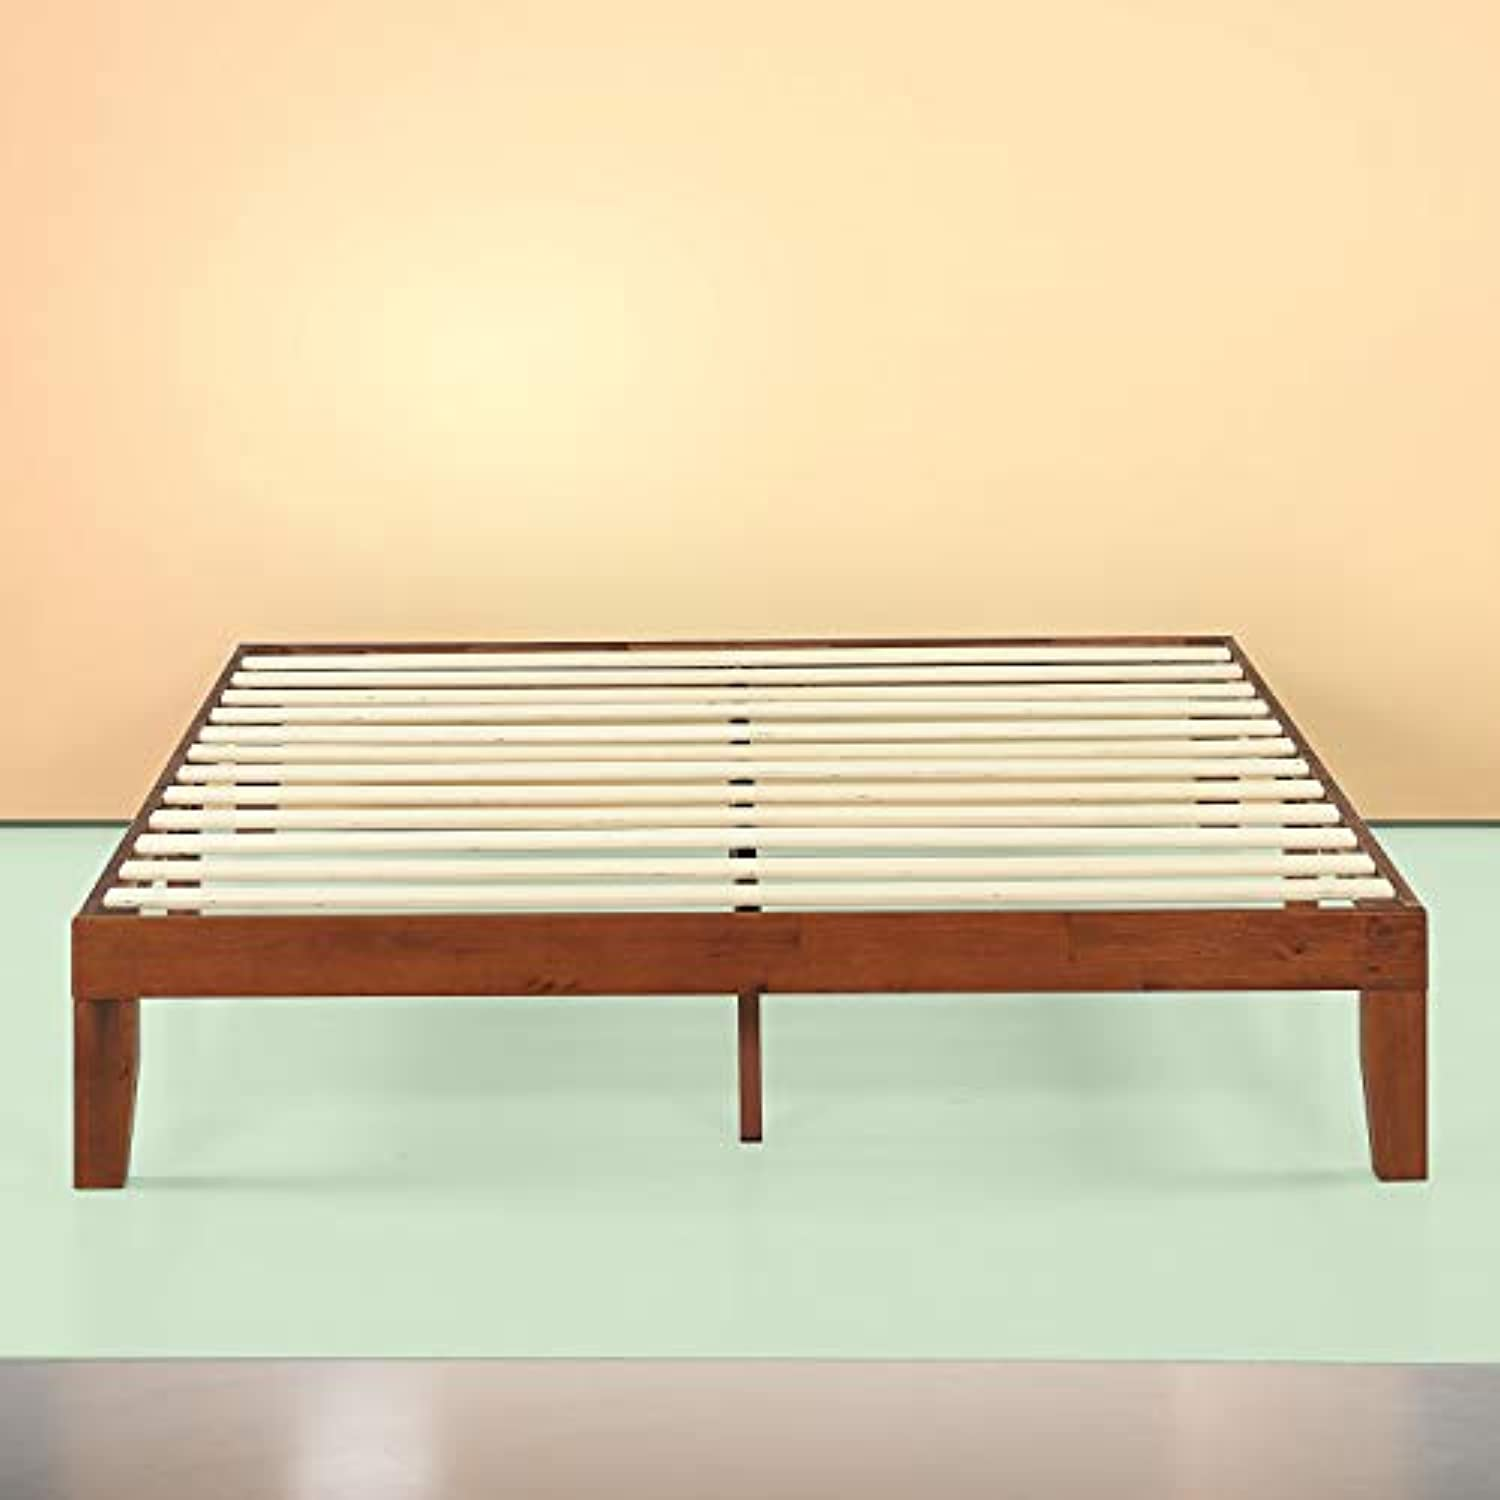 Zinus Wen 12 Inch Wood Platform Bed Frame / Solid Wood / Mattress Foundation with Wood Slat Support / No Box Spring Needed / Easy Assembly, Queen